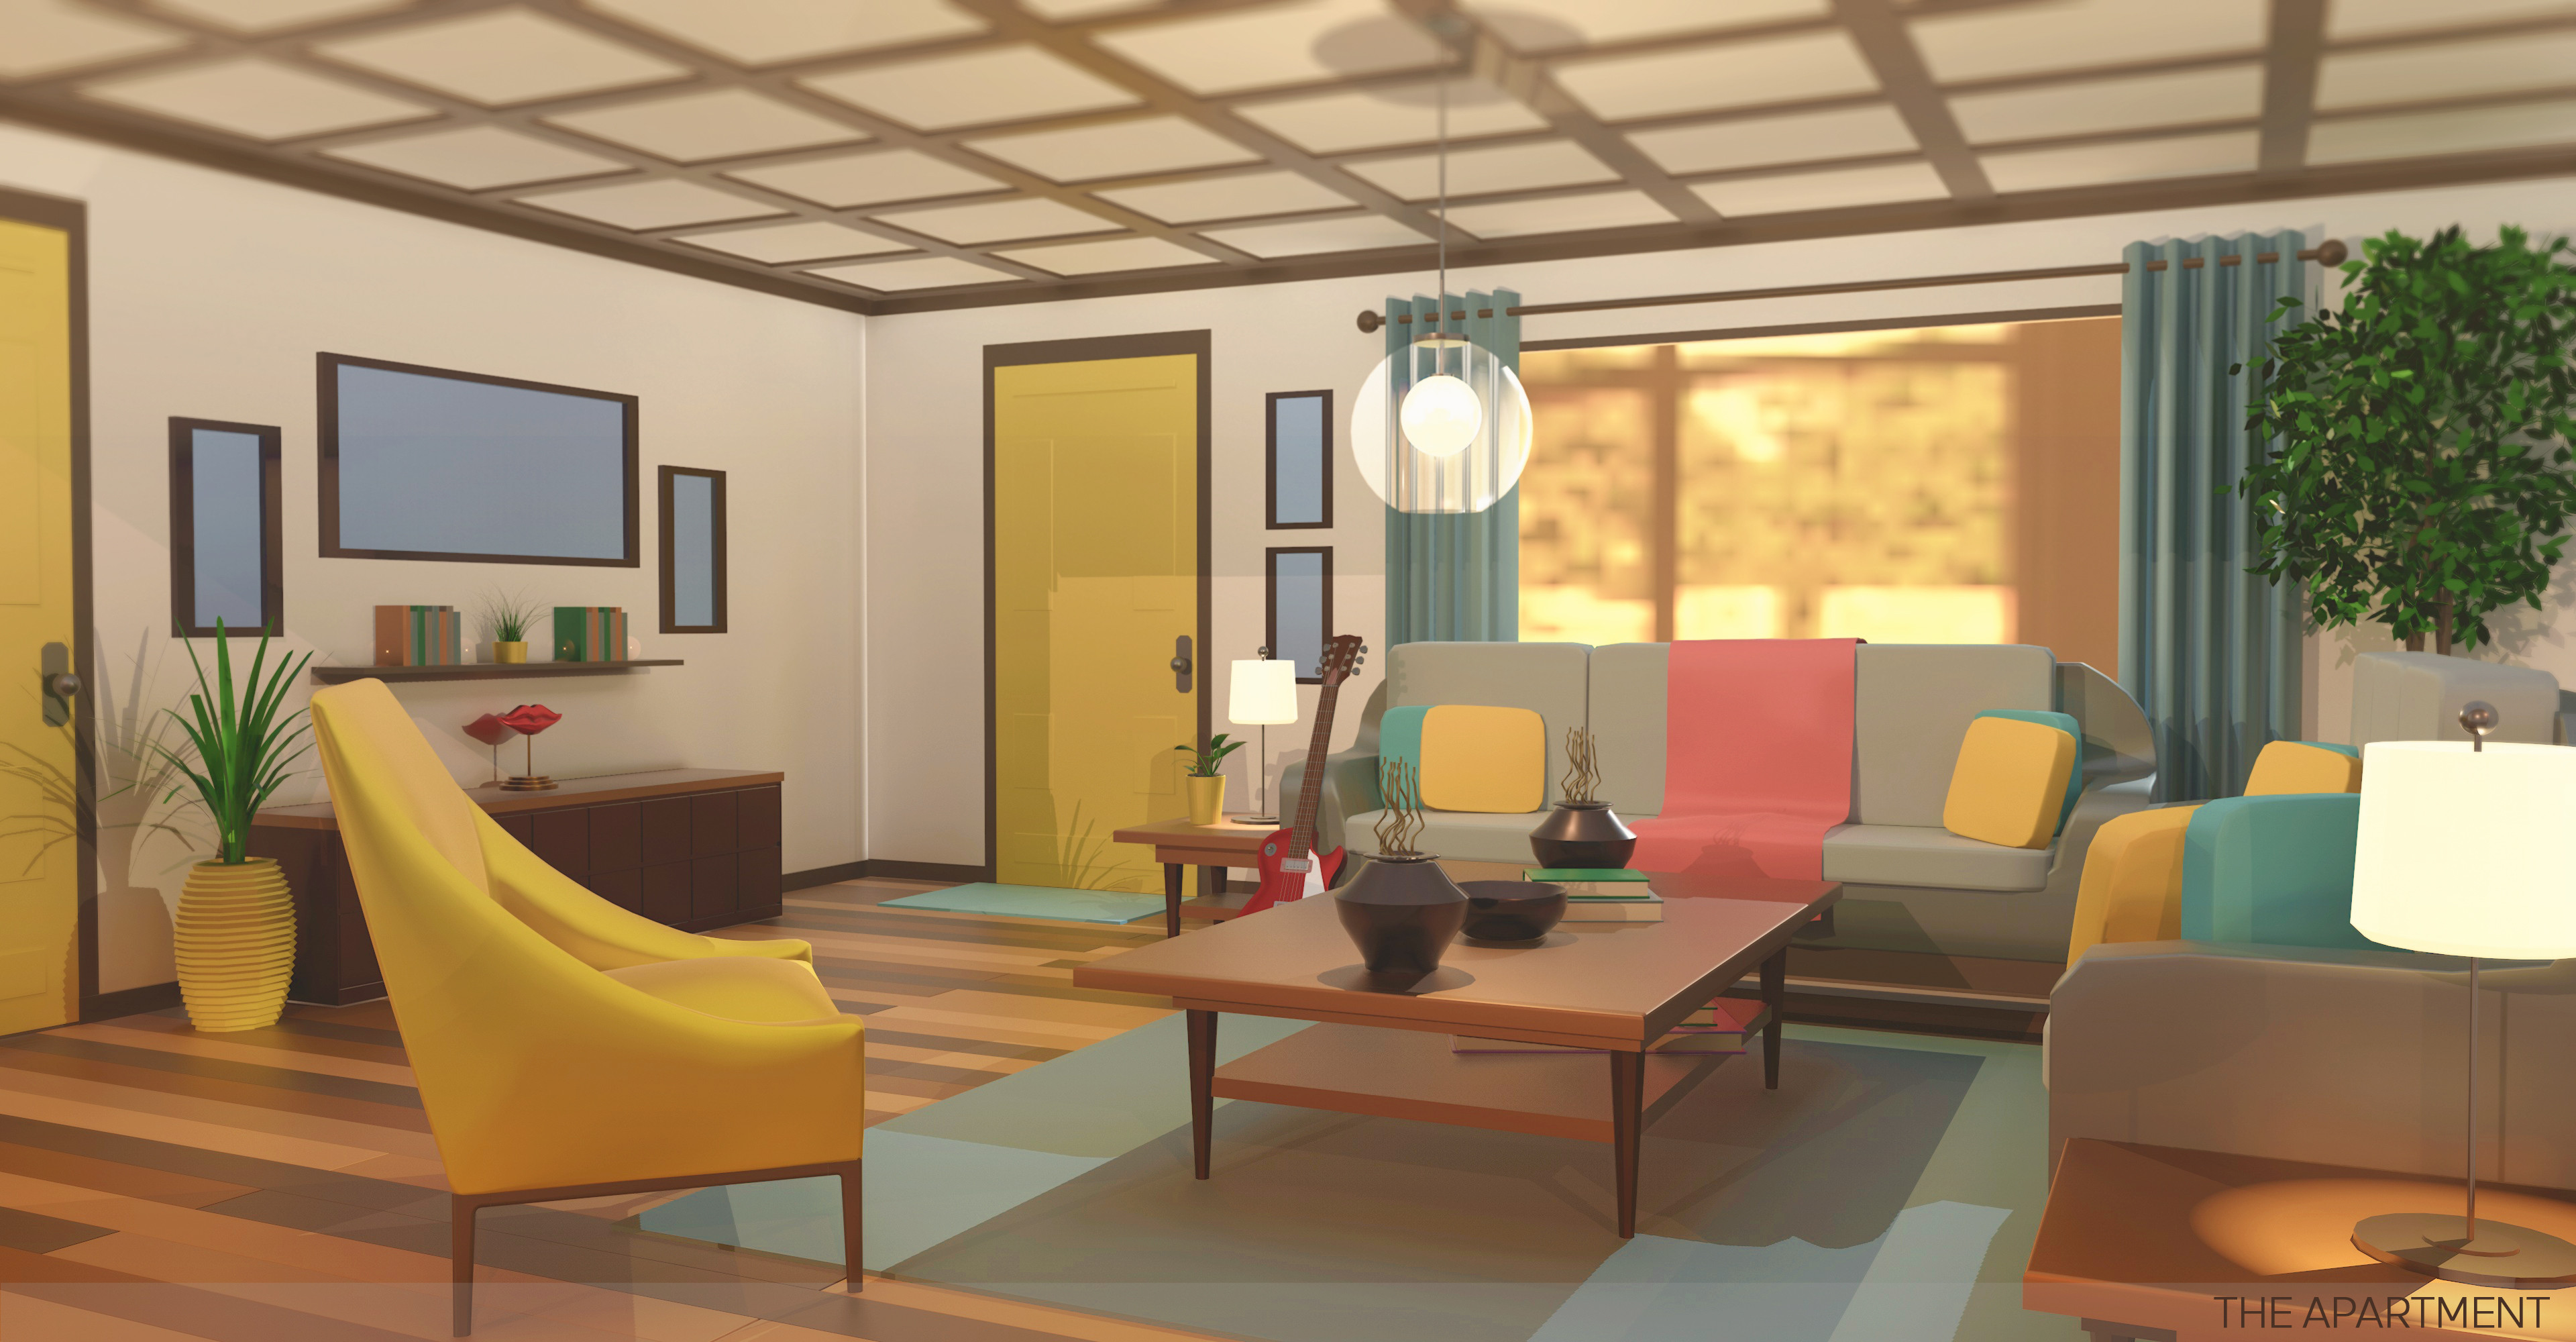 The_Apartment_Render_01